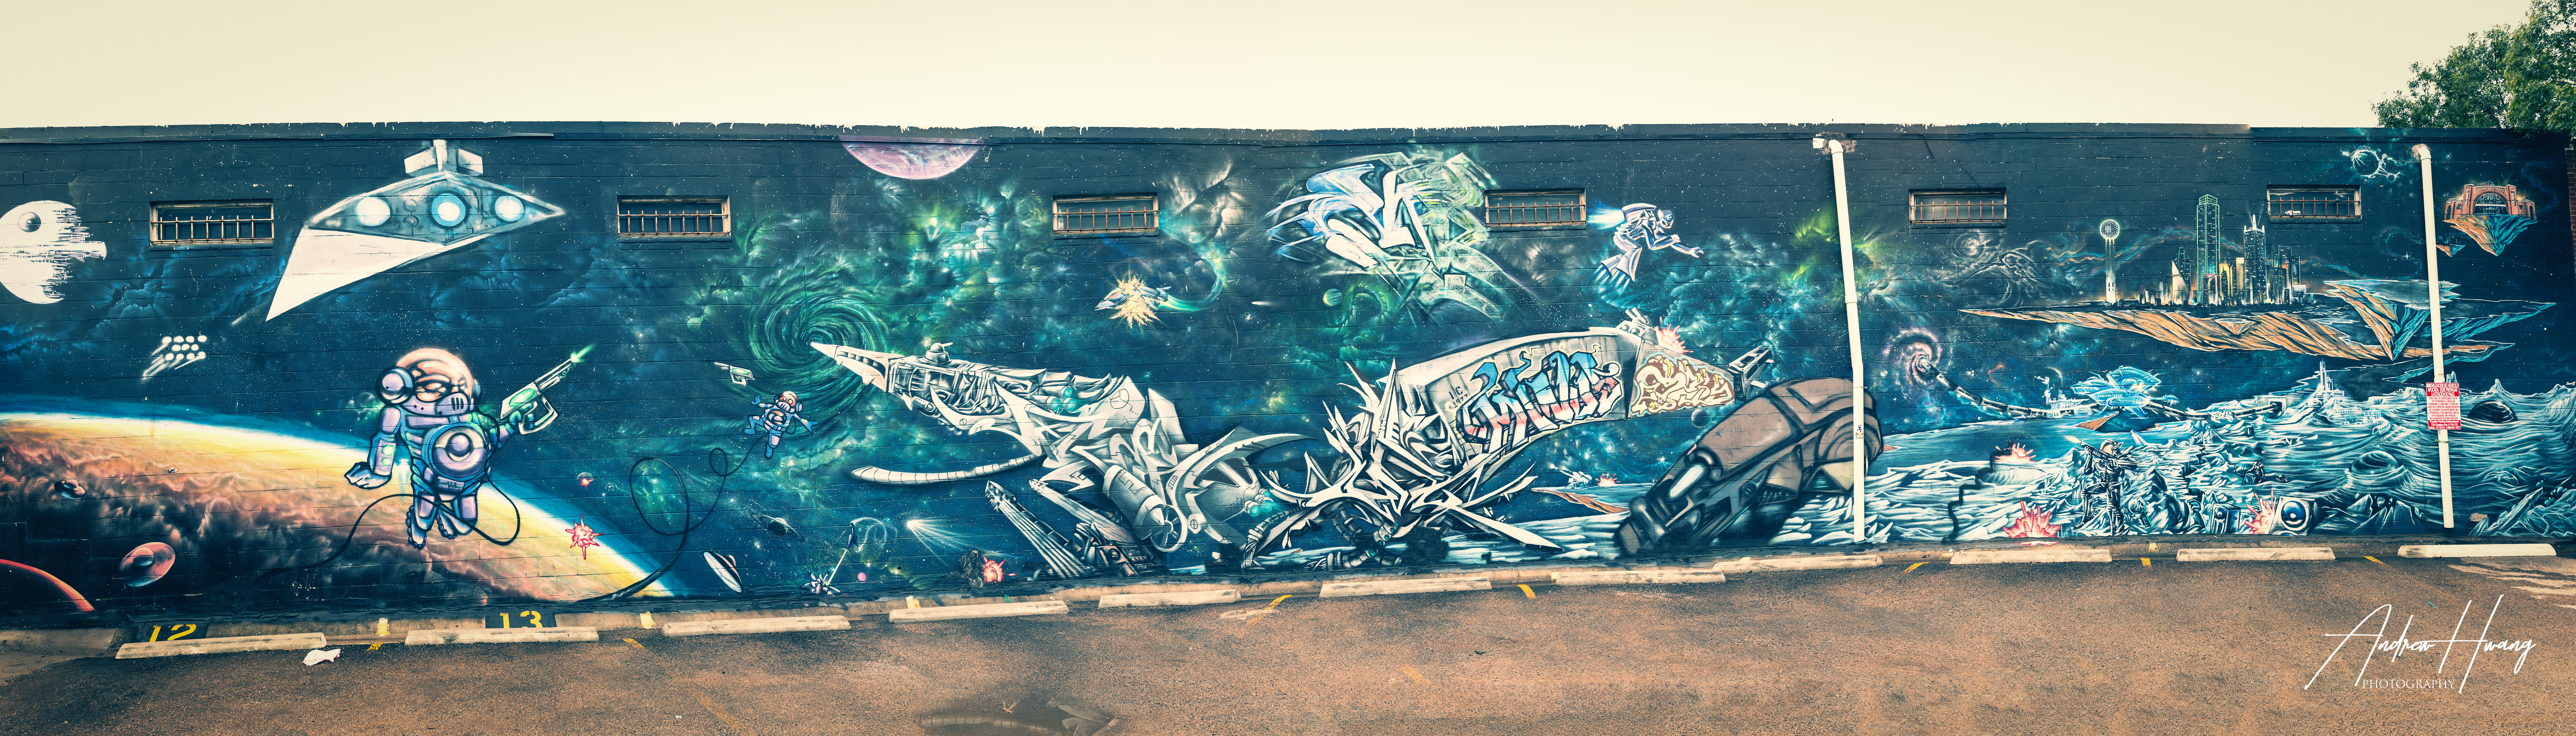 Deep Ellum - Wall Art Pano 25MB